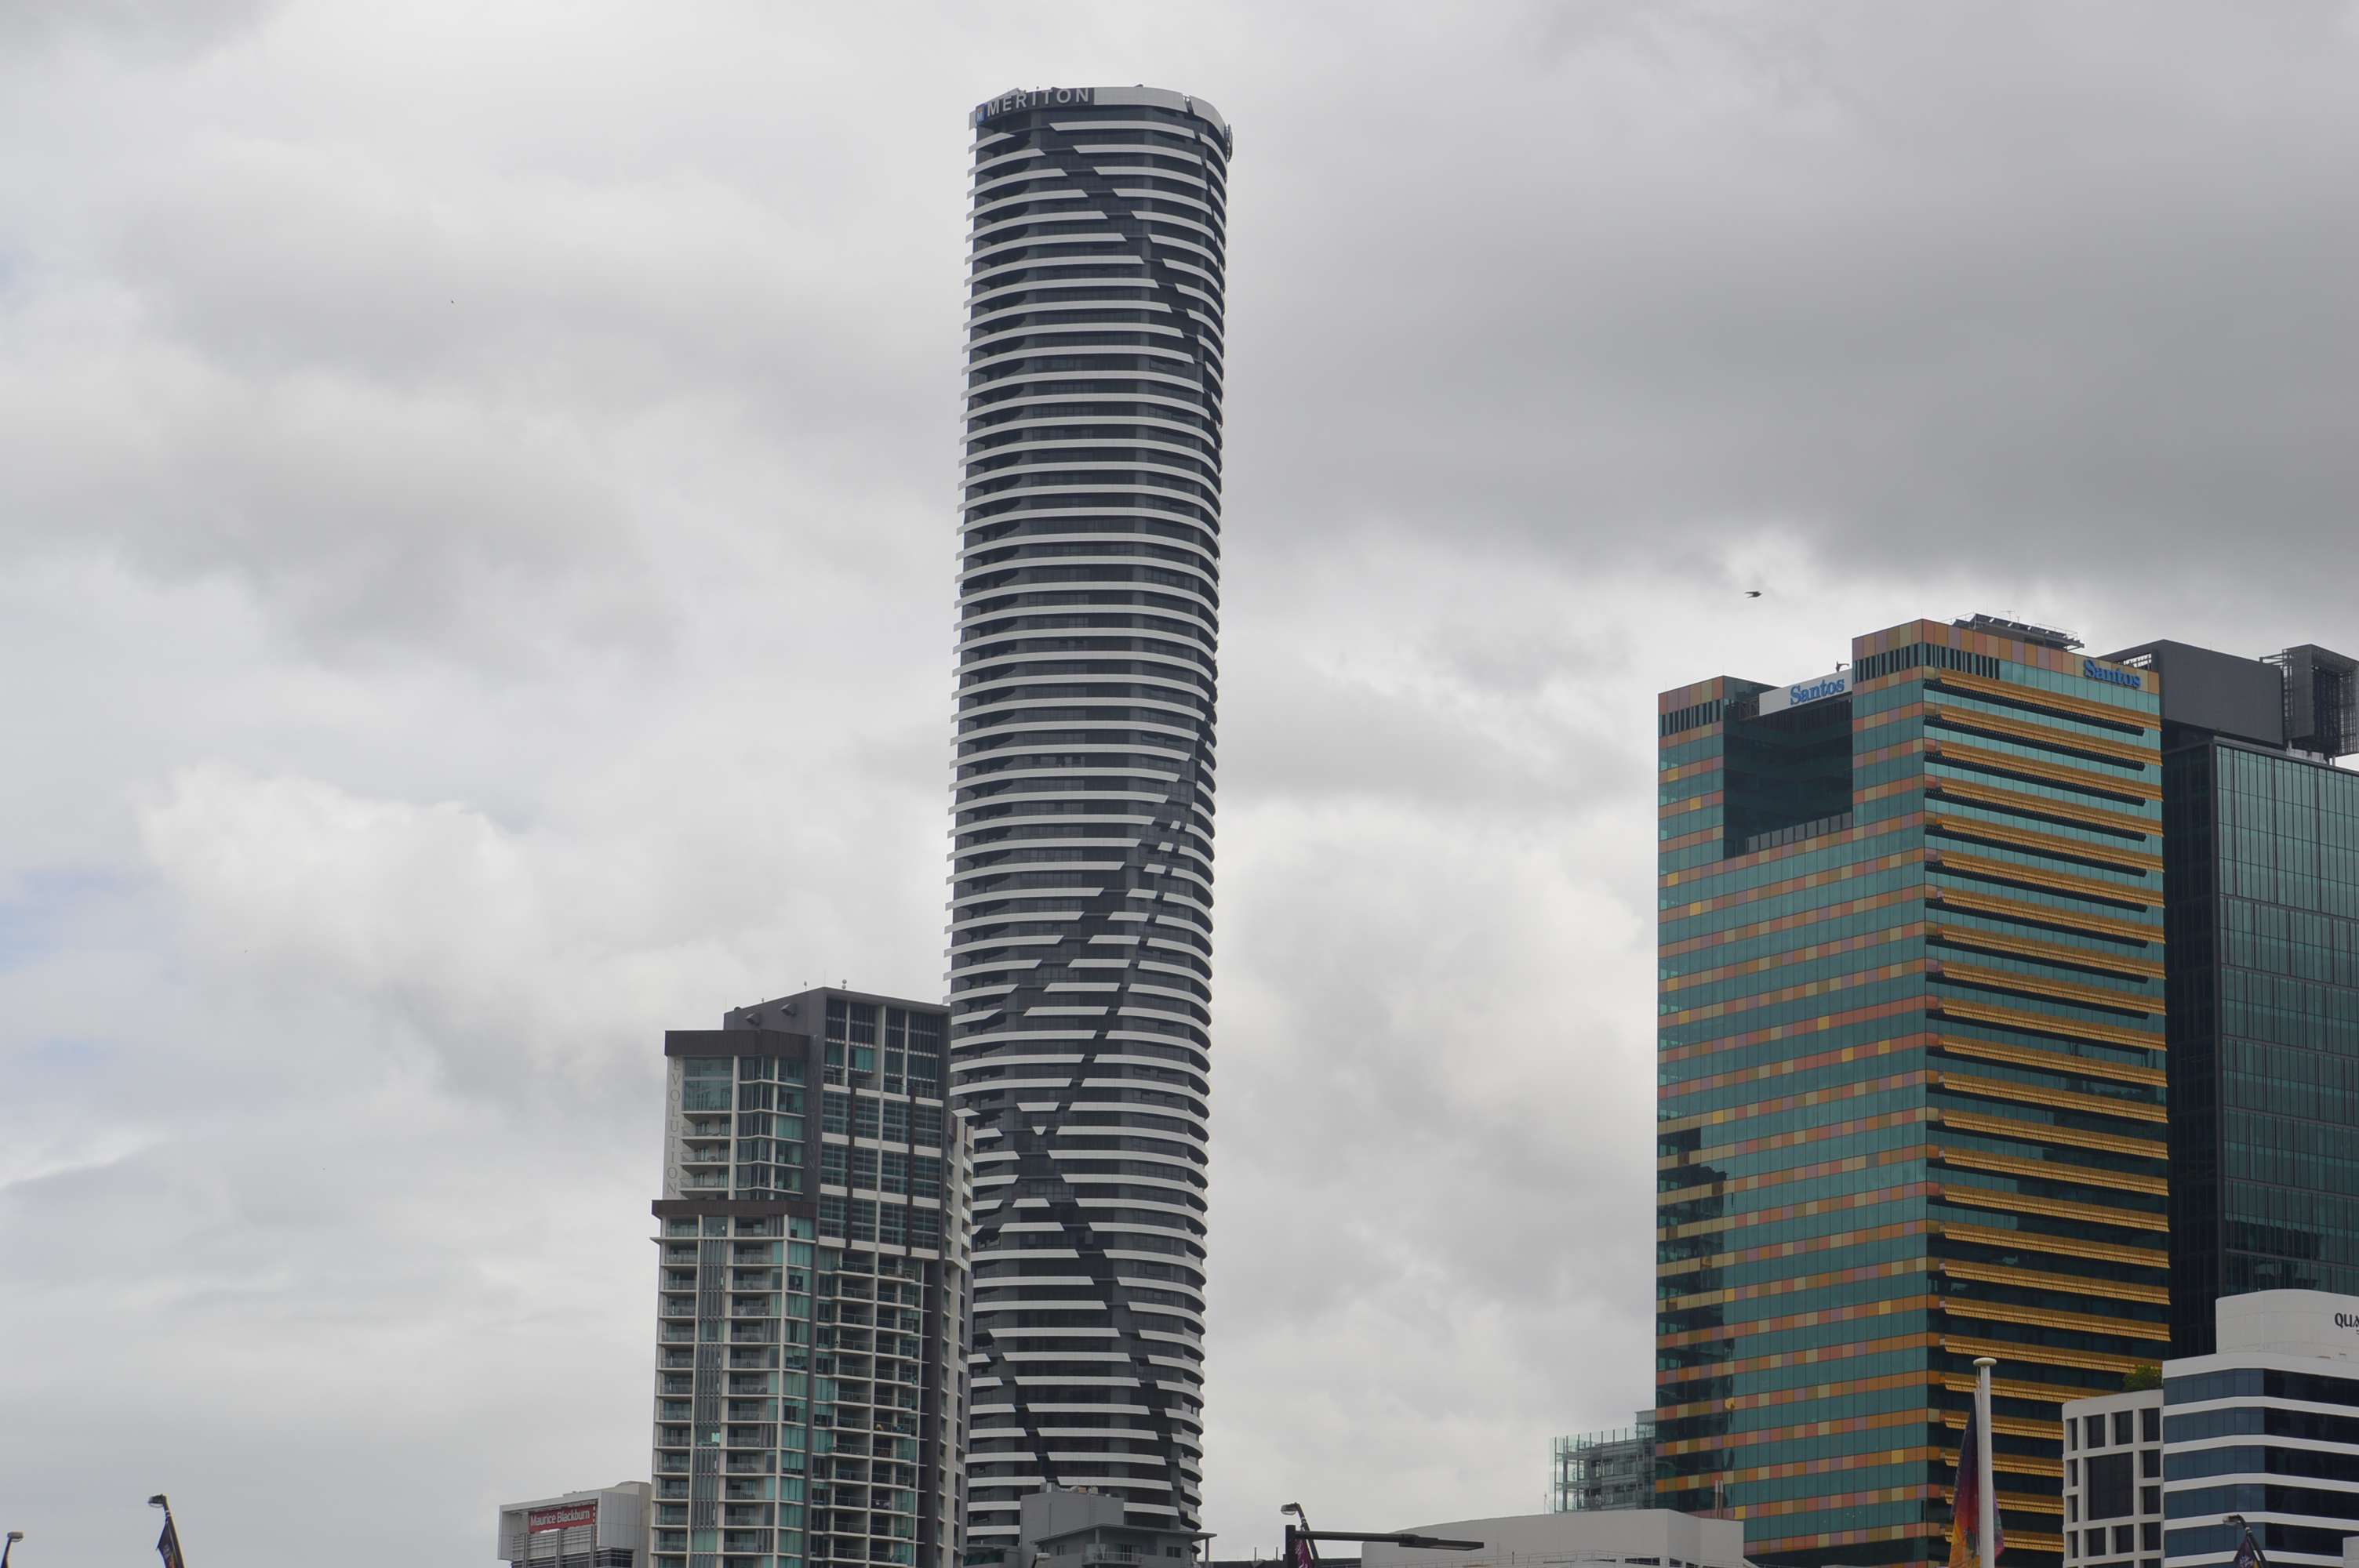 Meriton Apartments Tallest Building Brisbane With 80